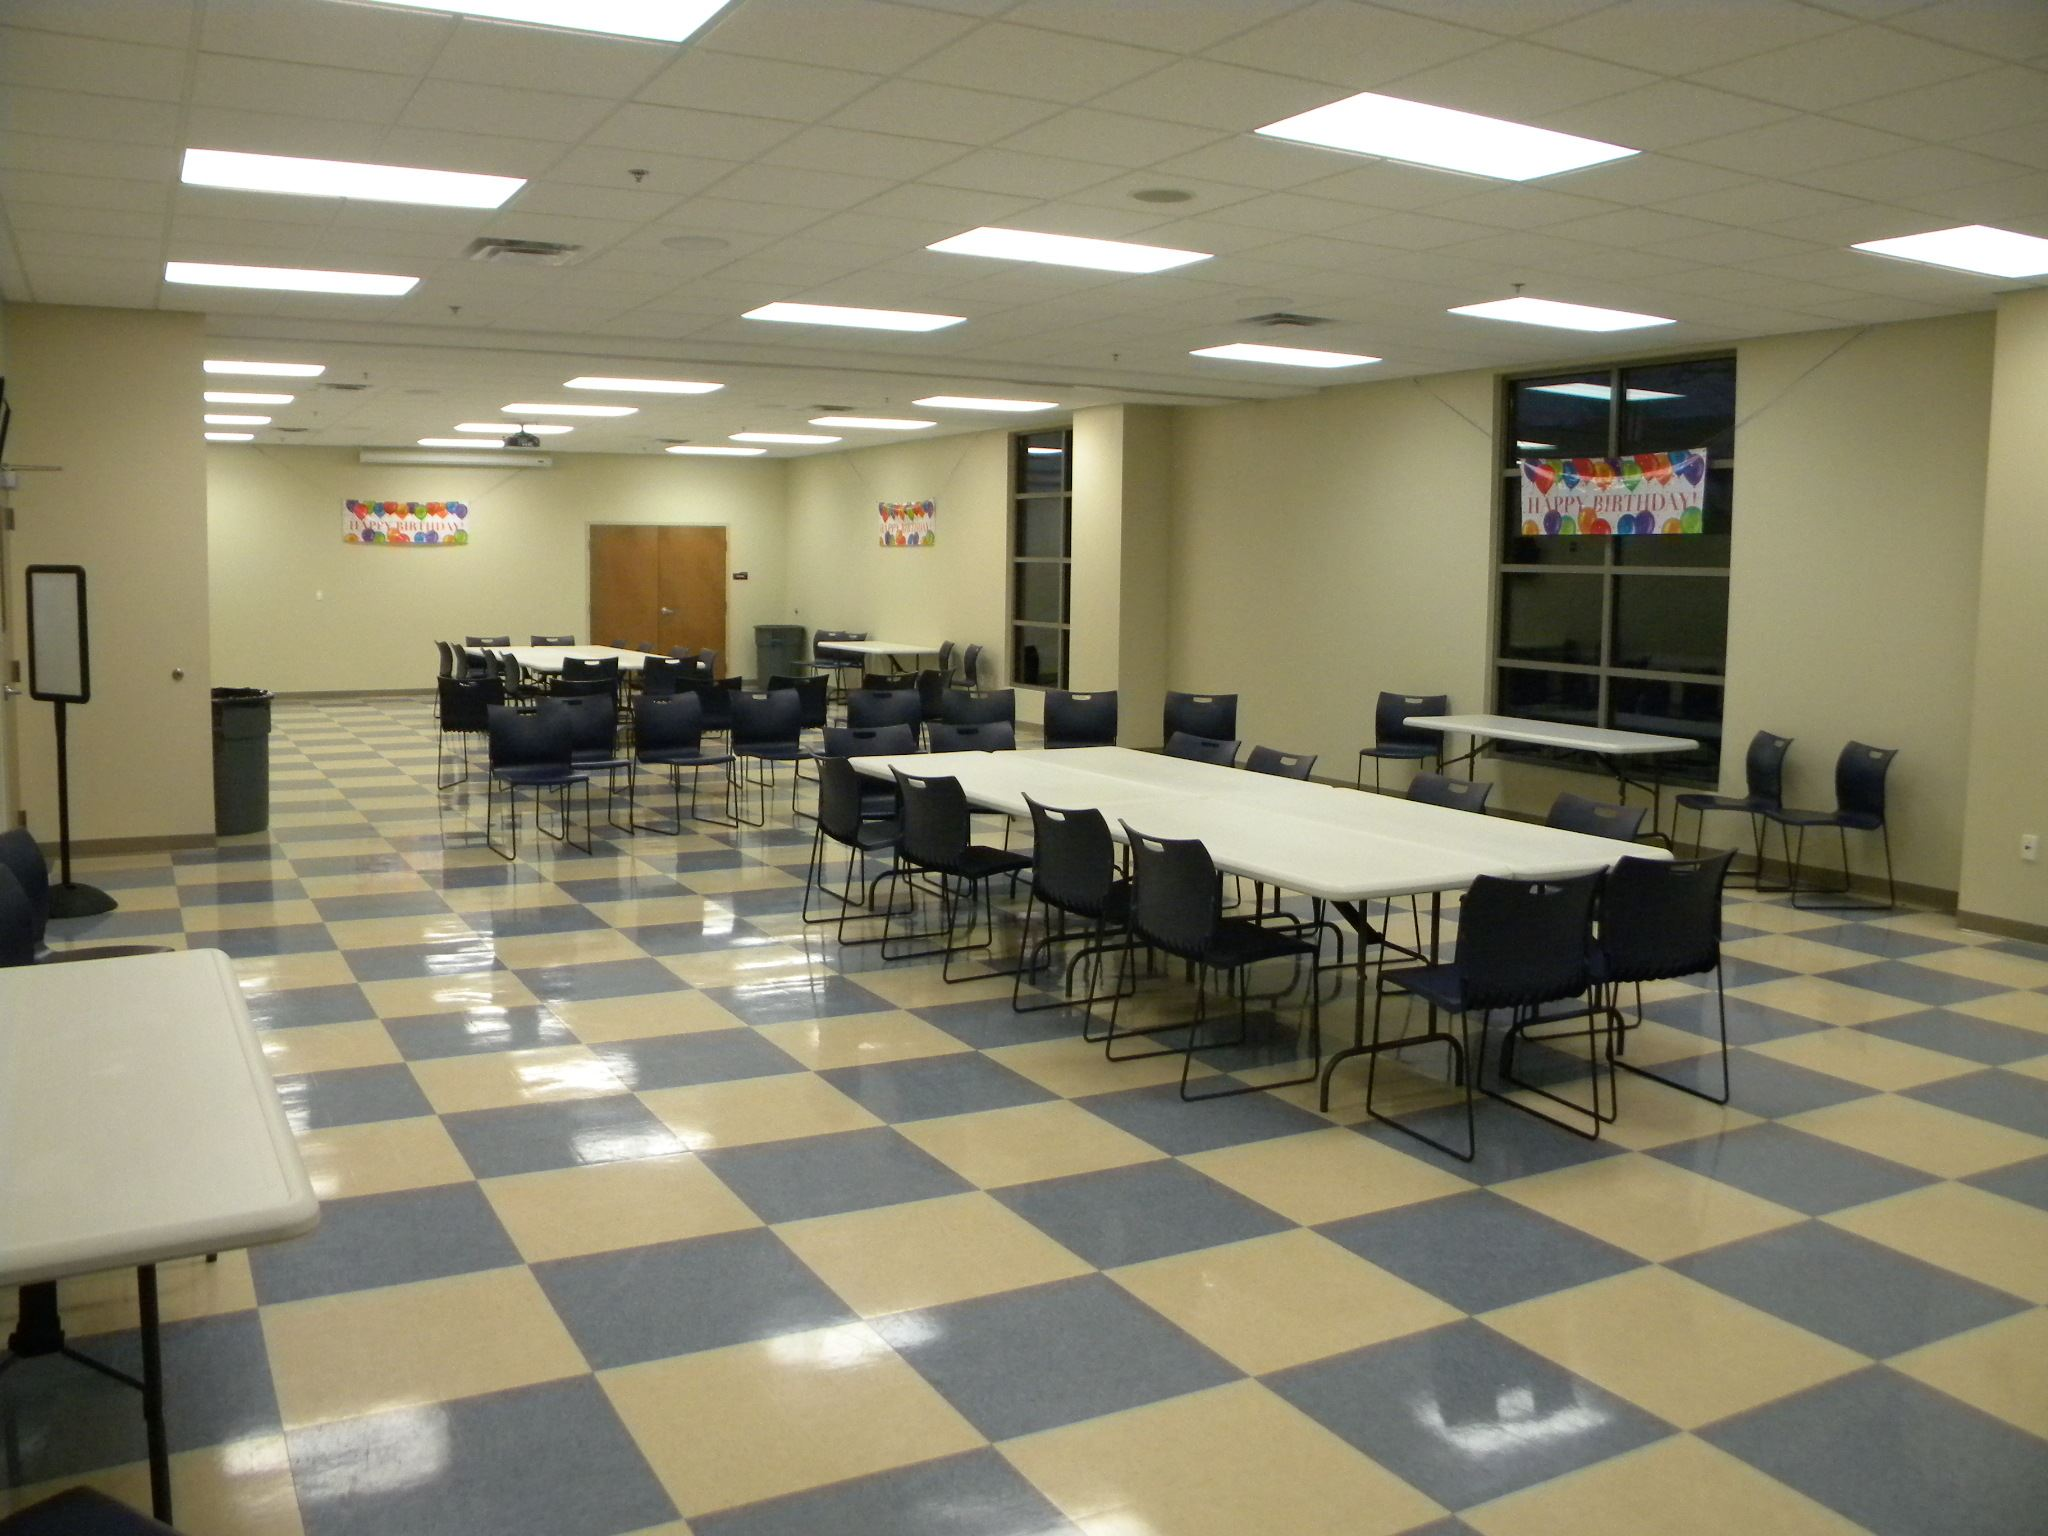 A large room set up with tables and chairs.